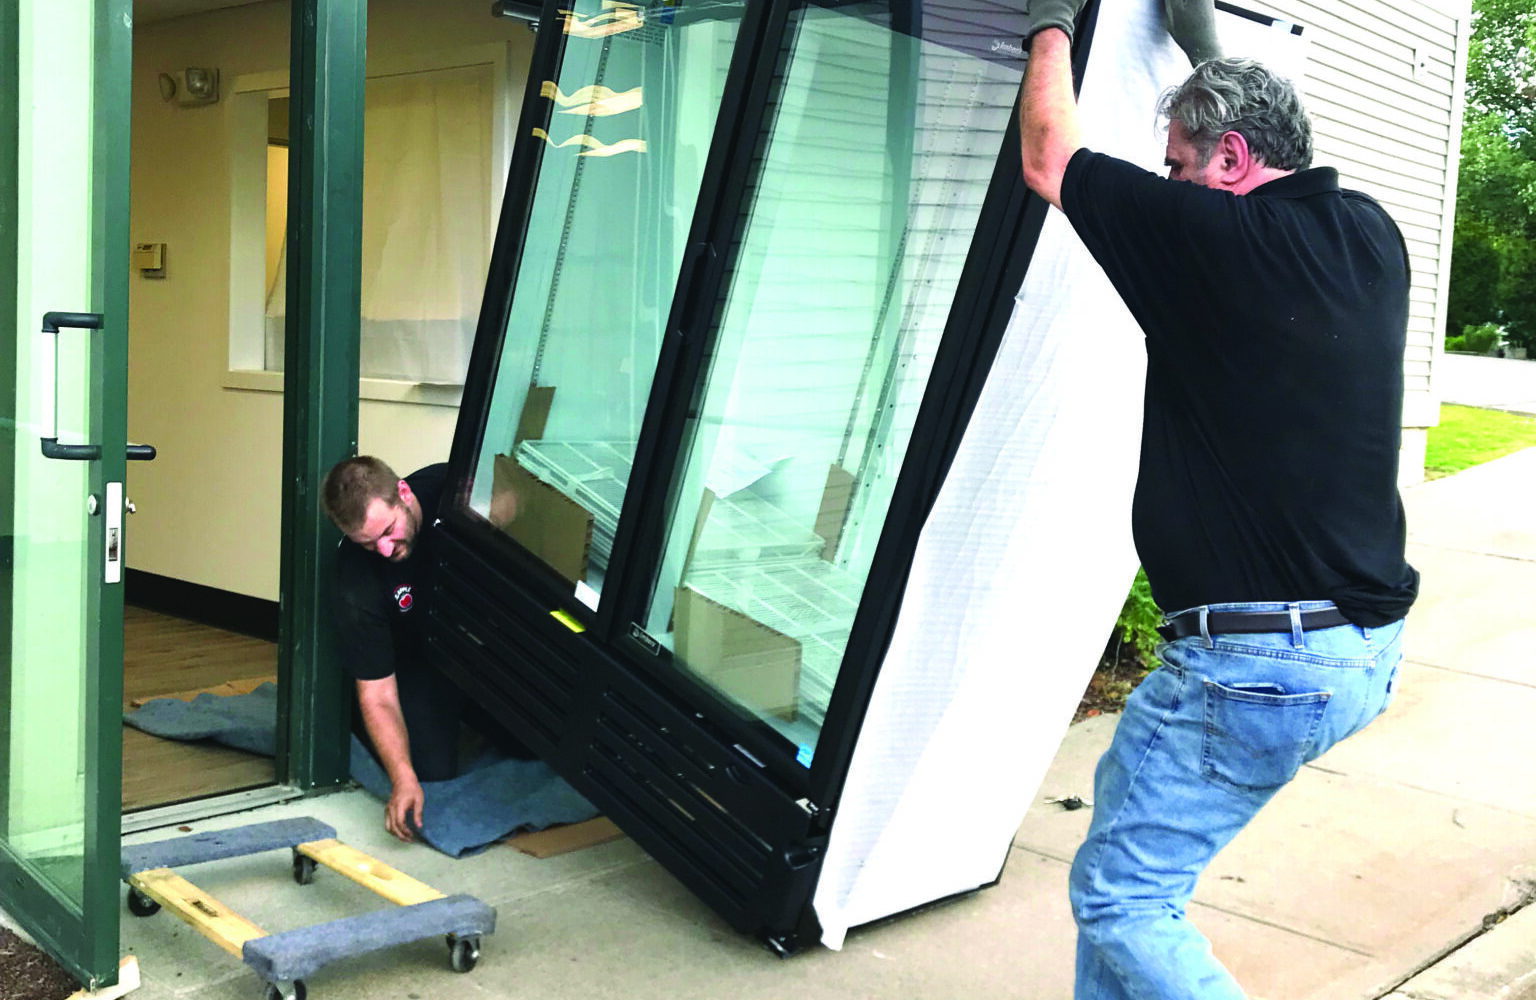 Tow men move a large commercial refrigerator into the Williston Community Food Shelf